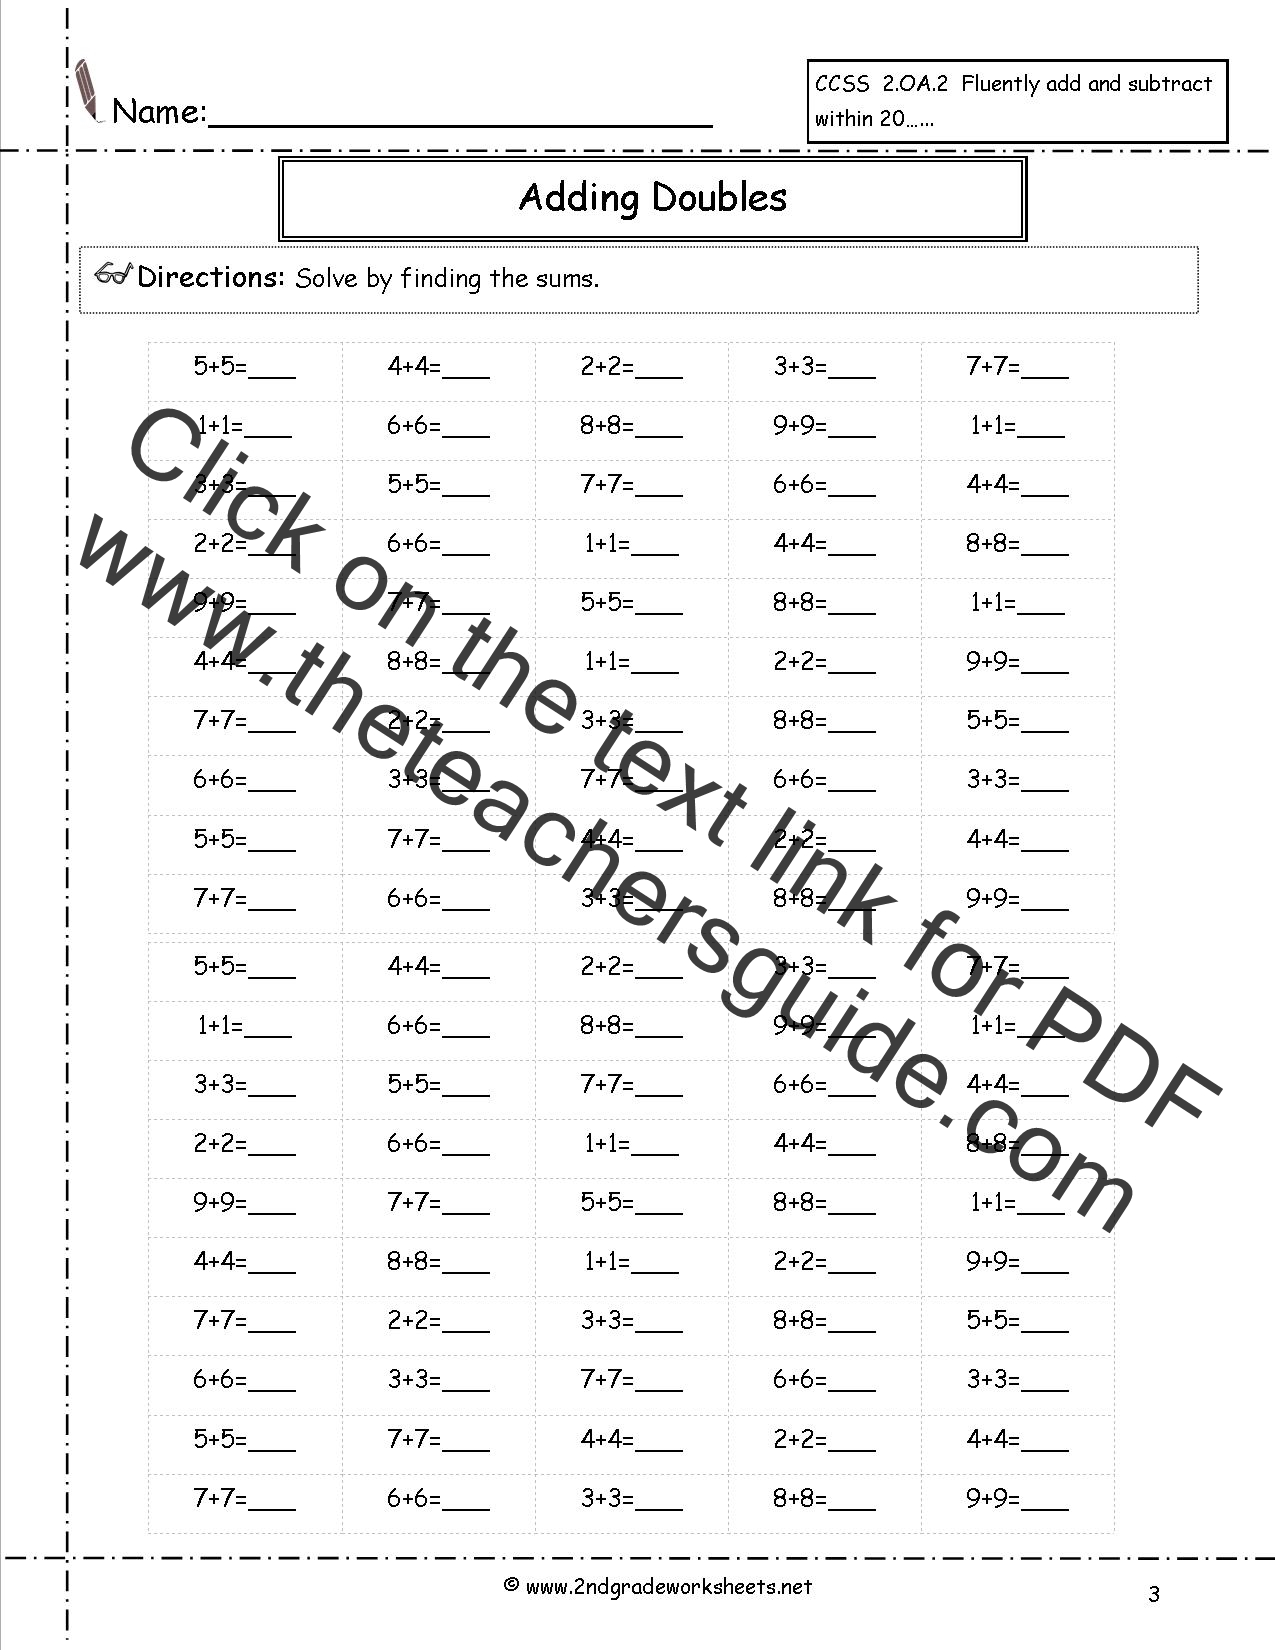 worksheet Adding Doubles free single digit addition worksheets doubles facts worksheet worksheet